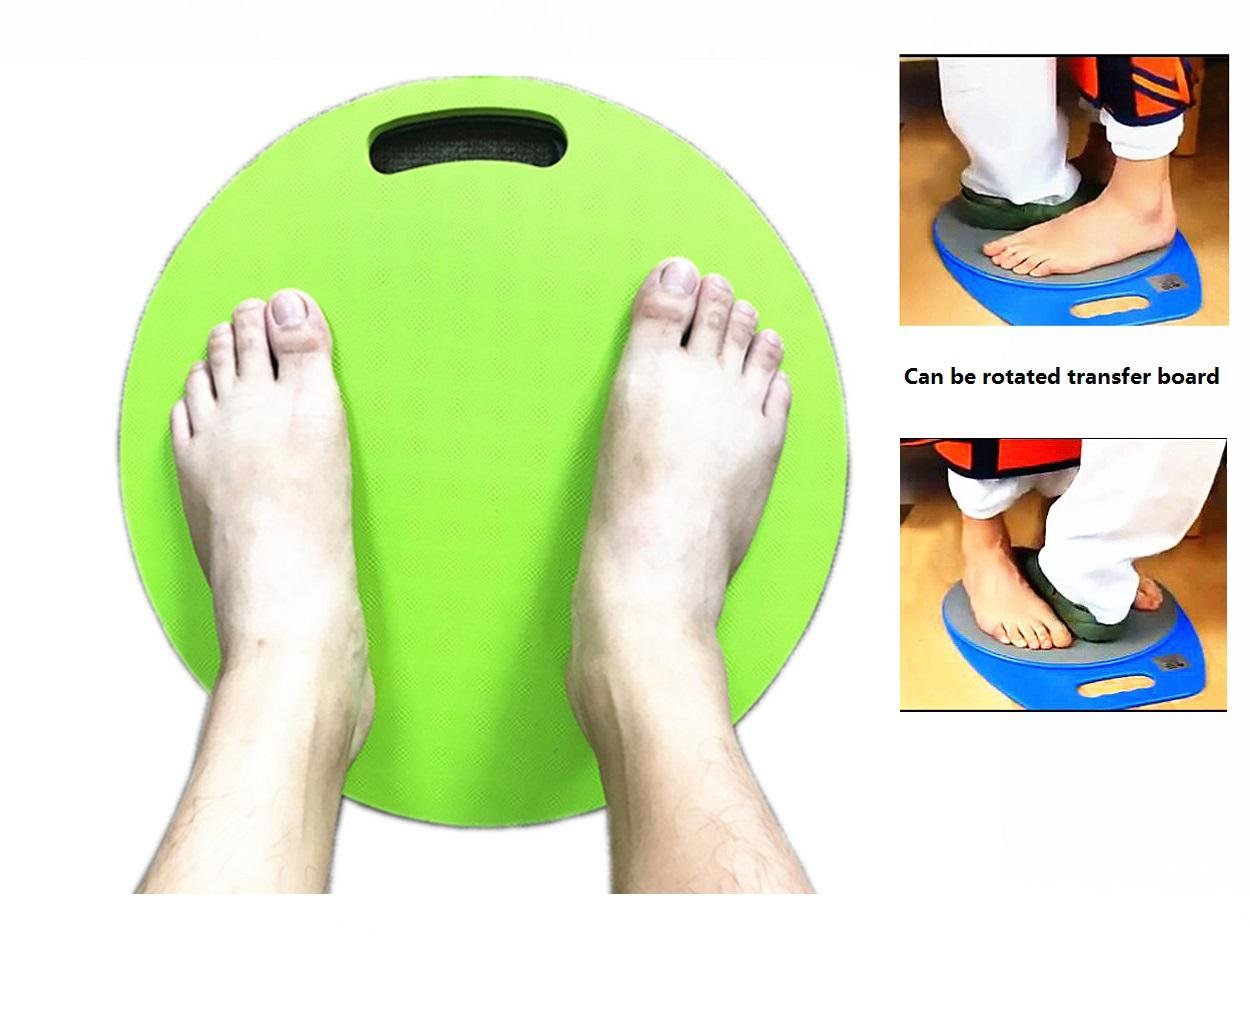 LUCKYYAN Can be Rotated Transfer Slide Board Easier Transfers from Wheelchairs, Beds and More